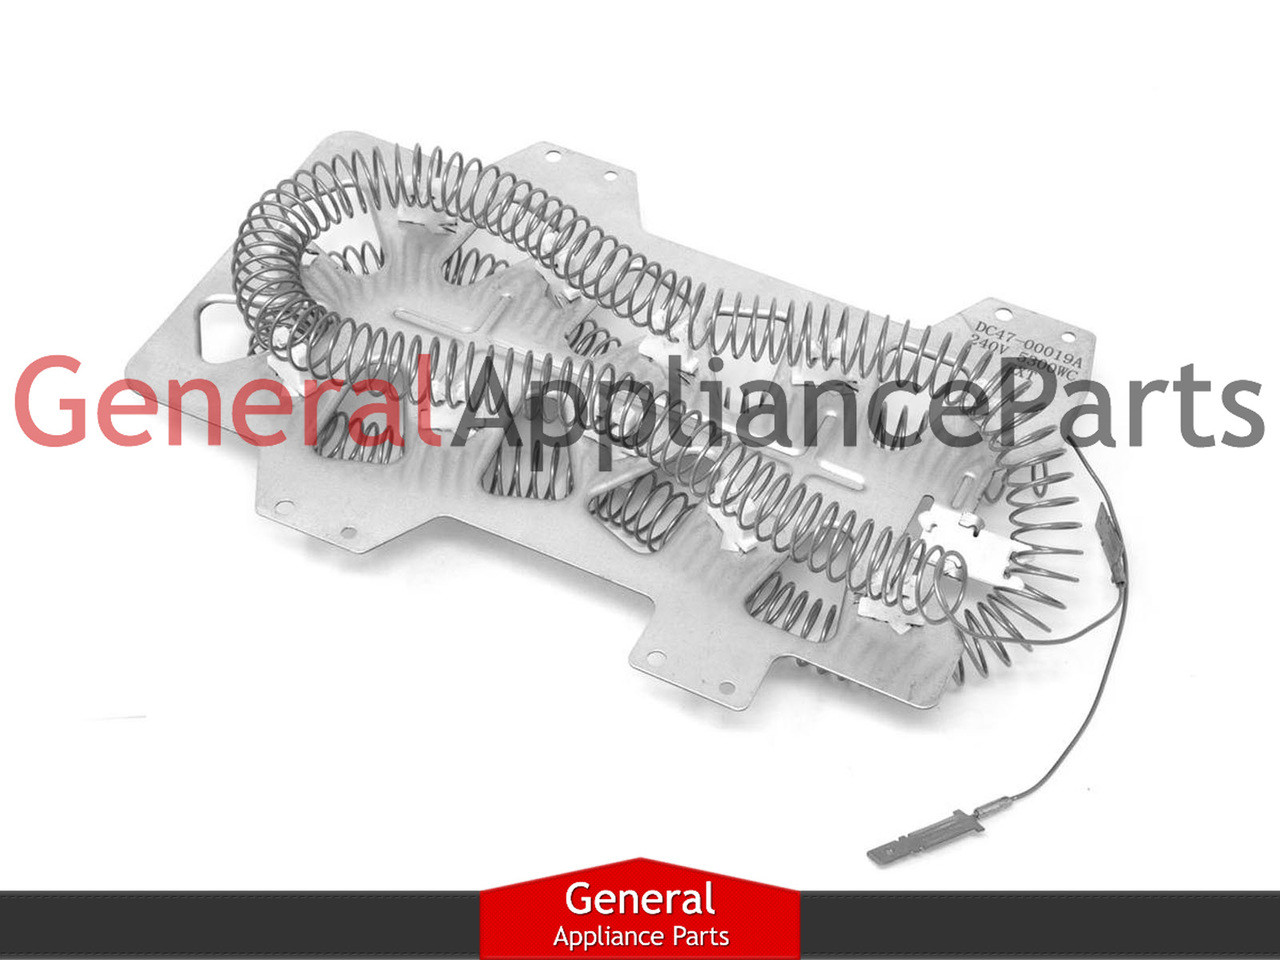 PS4205218 DC47-00019A Dryer Heating Element for Samsung AP4201899